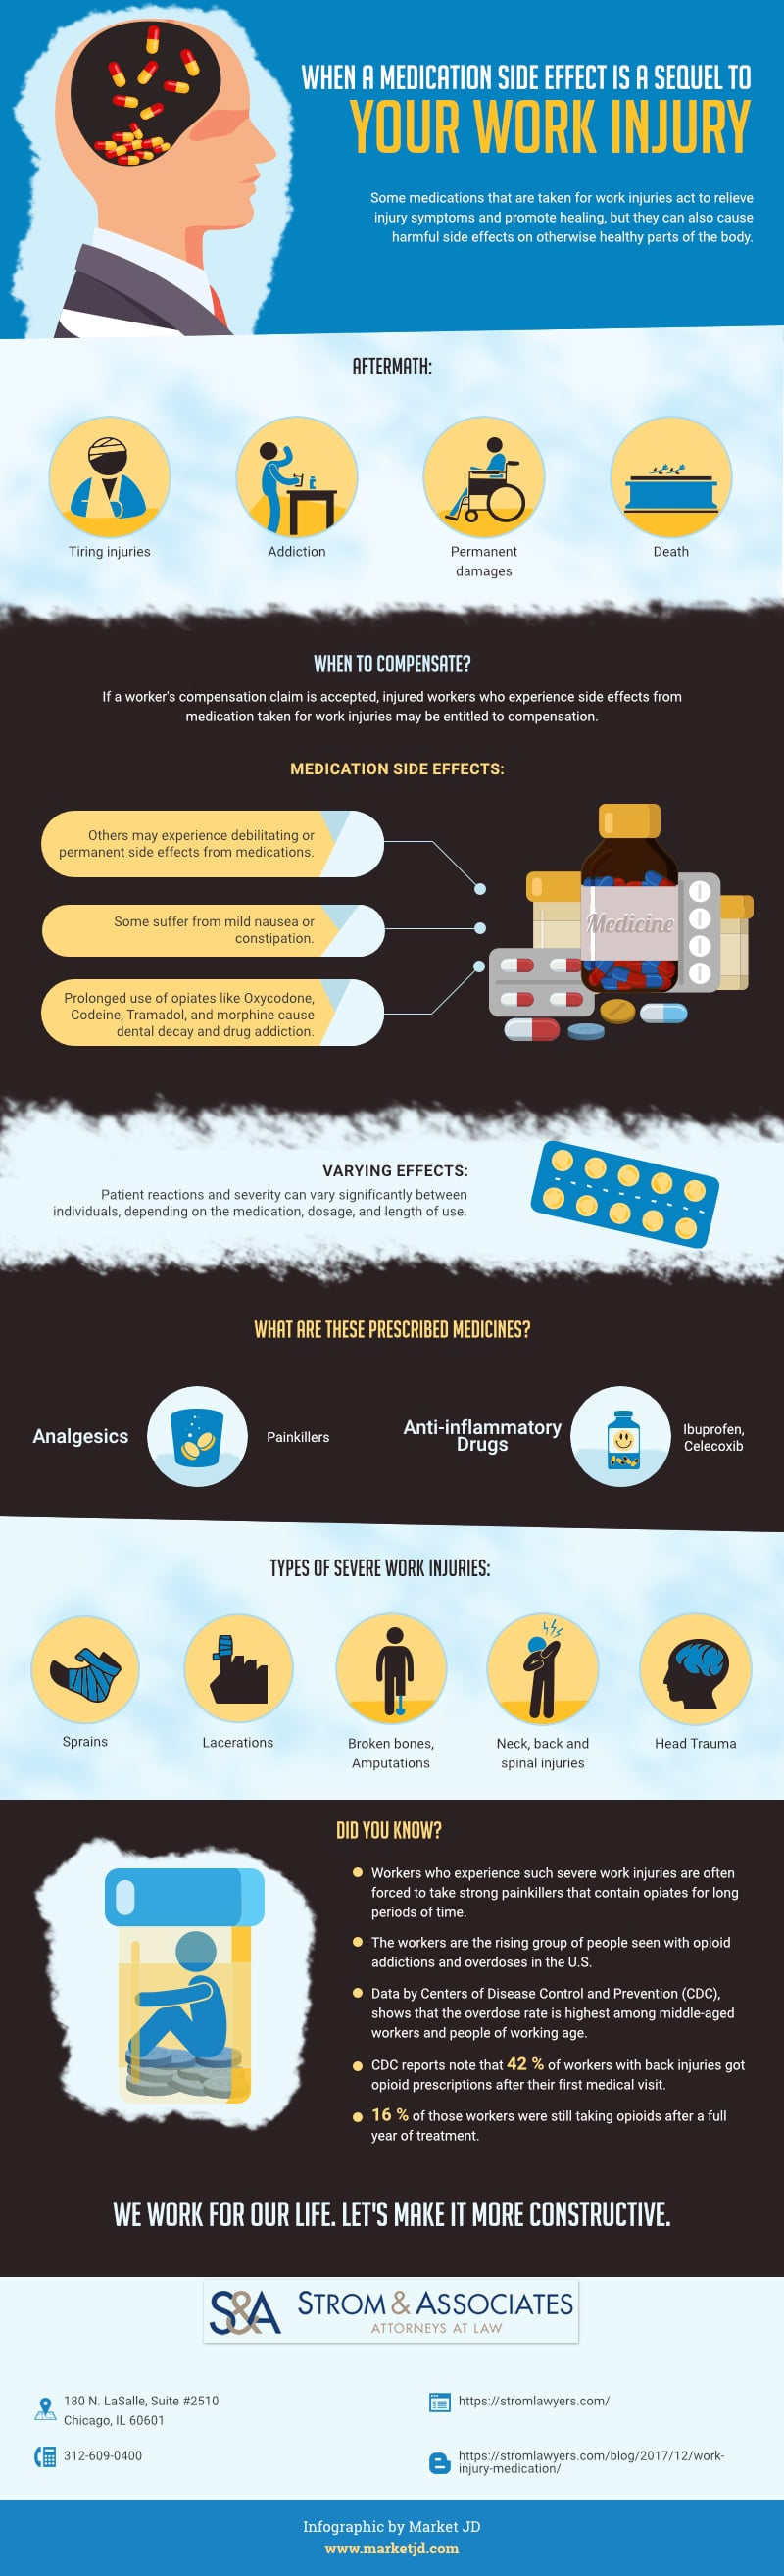 Medication side effect infographic